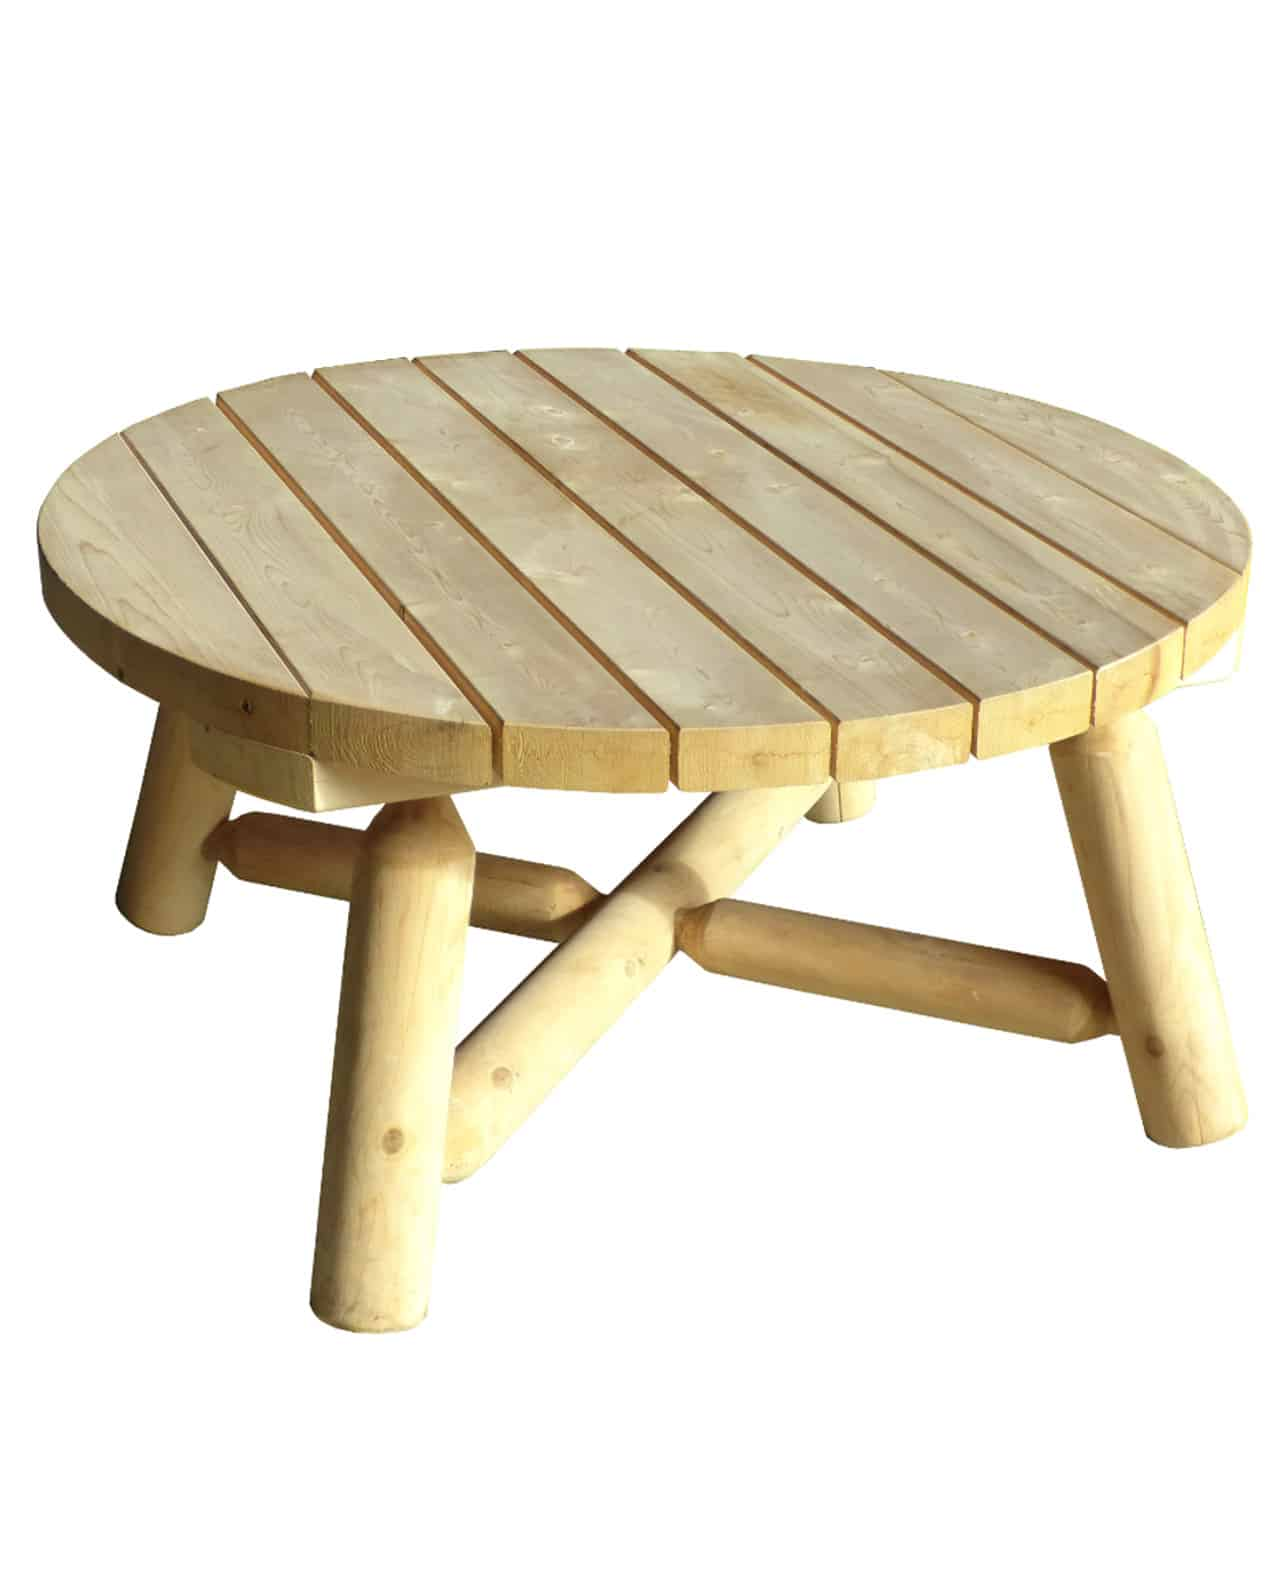 Table basse de jardin en bois de c dre blanc grand mod le - Table de jardin ronde intermarche ...